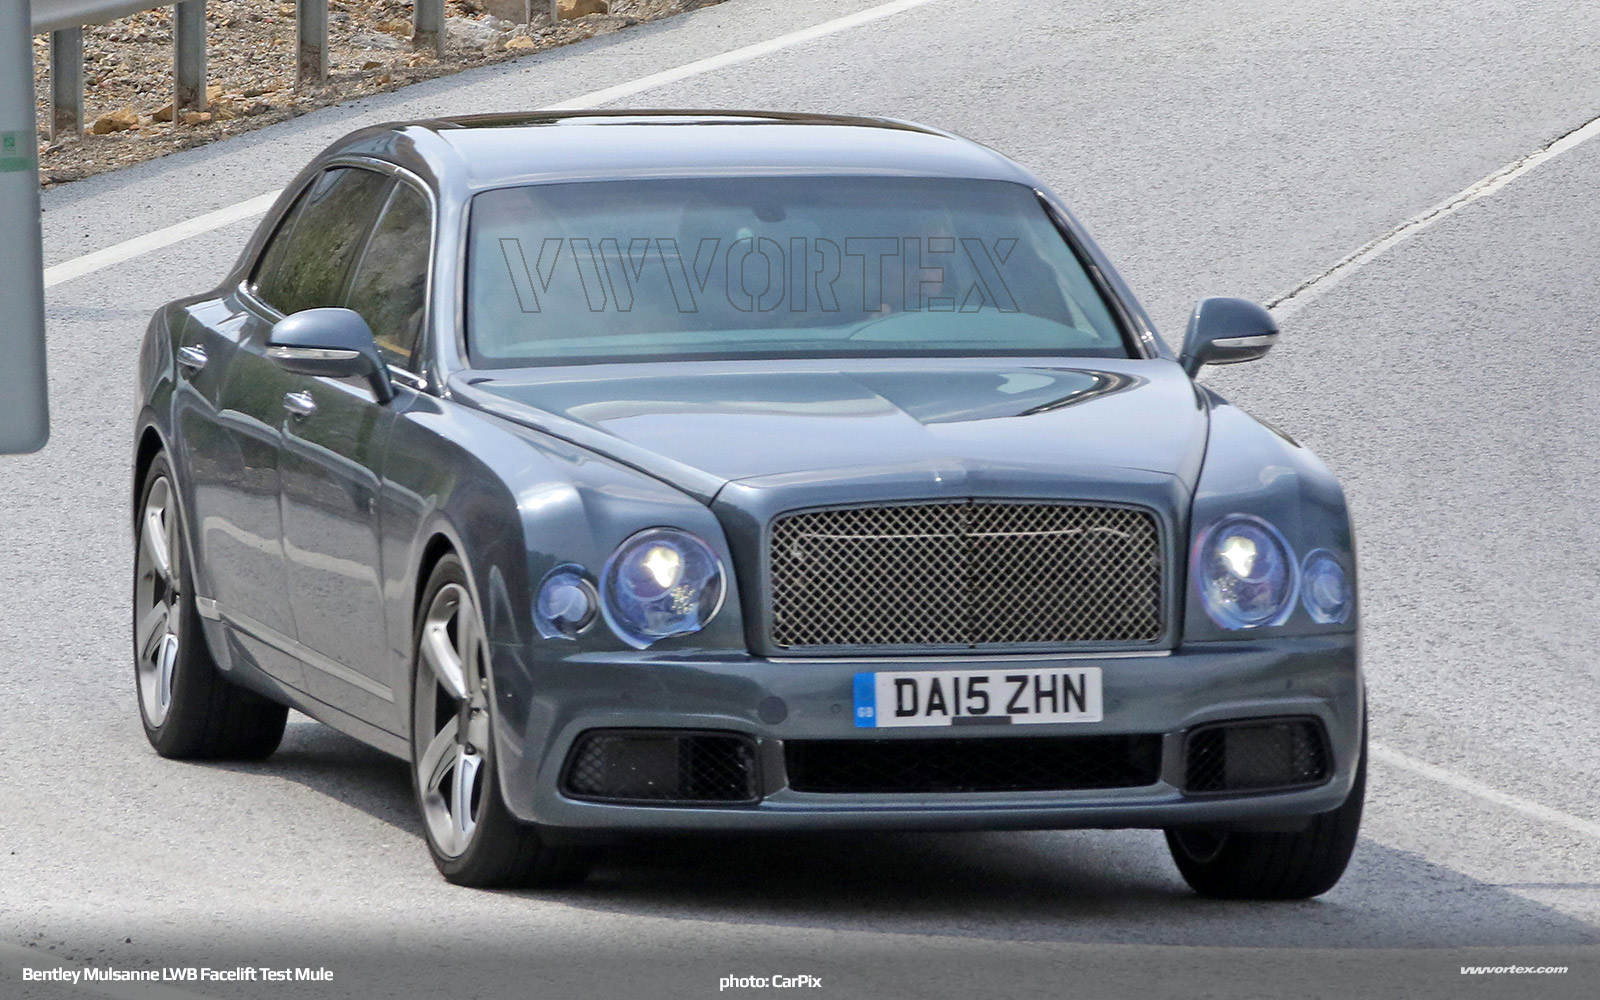 Bentley Mulsanne LWB test mule facelift 513 110x60